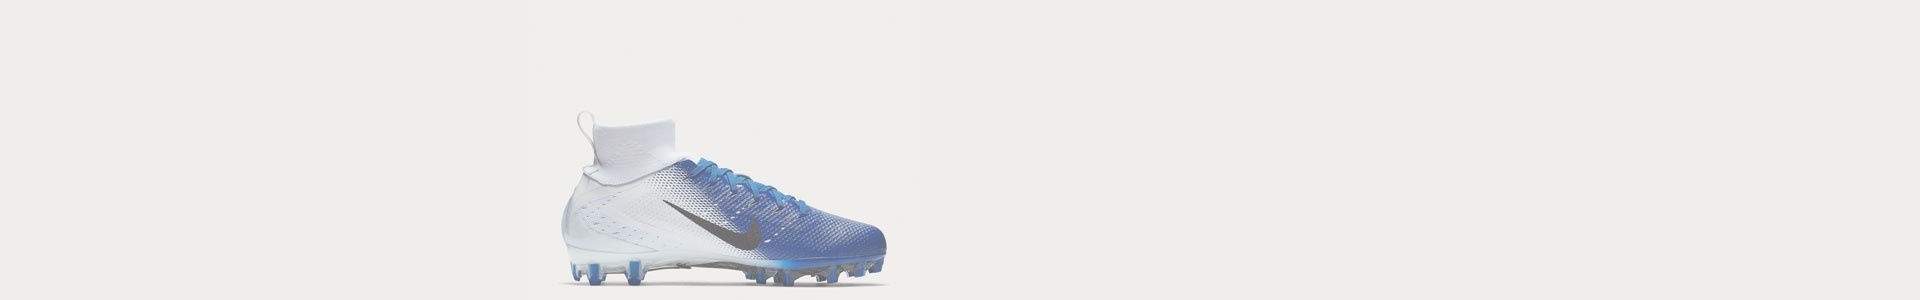 Scarpe da Football Americano Uomo online | Acquista su AnyGivenSunday.Shop